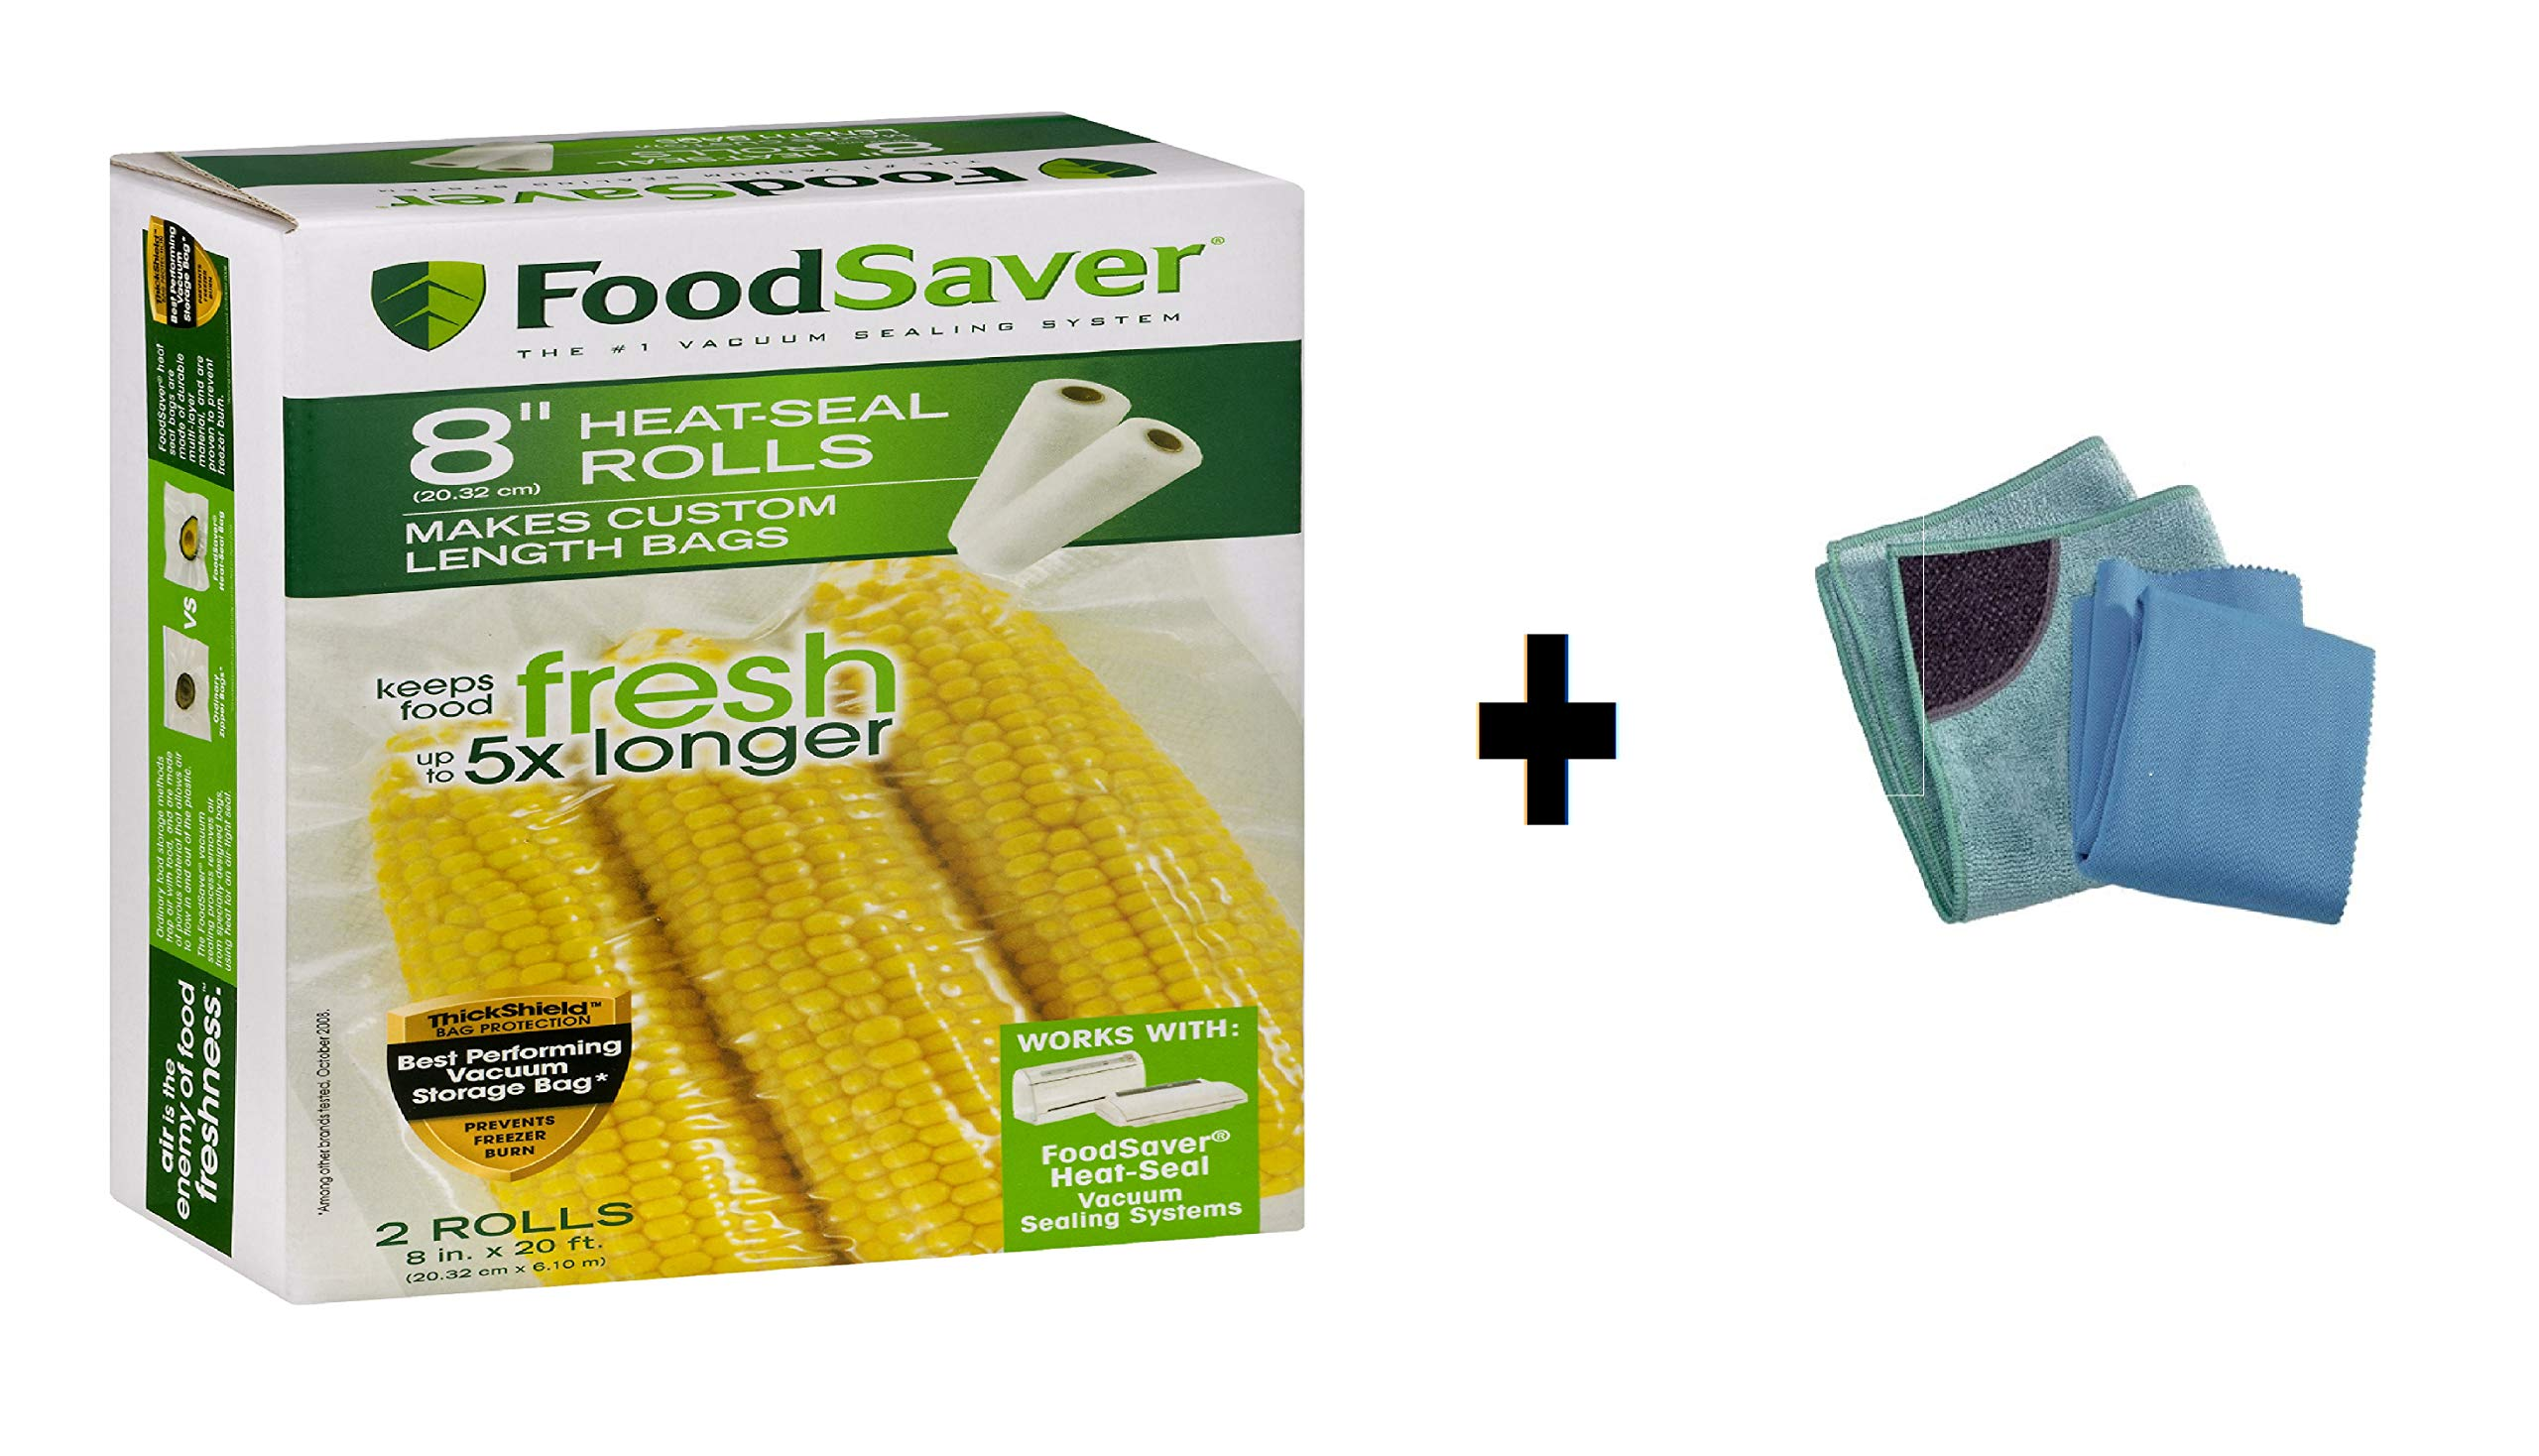 FoodSaver 8'' x 20' Vacuum Seal Rolls, 2 Pack with Free Kitchen Cleaning Cloths Pack of 2